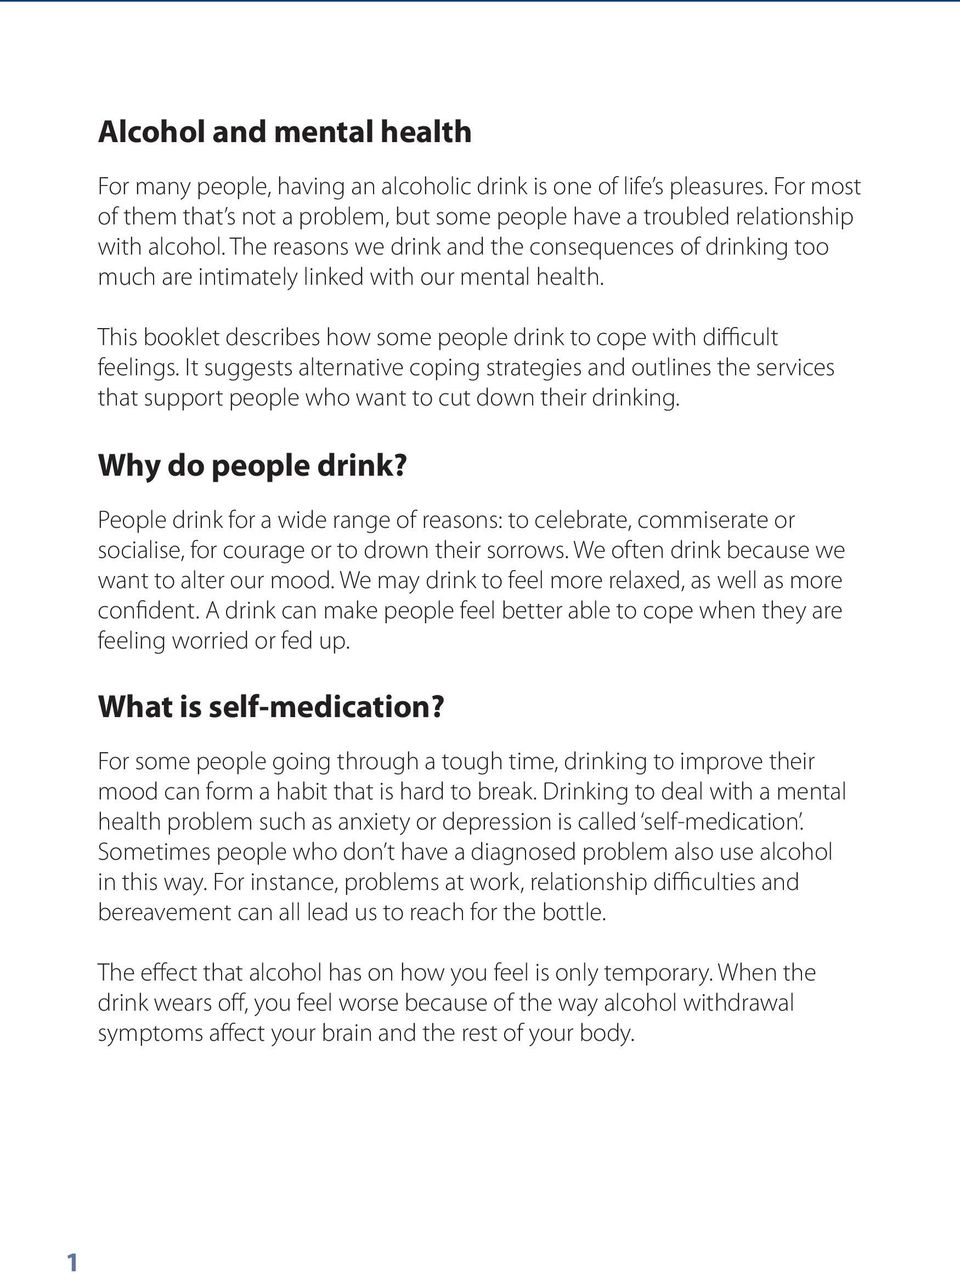 It suggests alternative coping strategies and outlines the services that support people who want to cut down their drinking. Why do people drink?